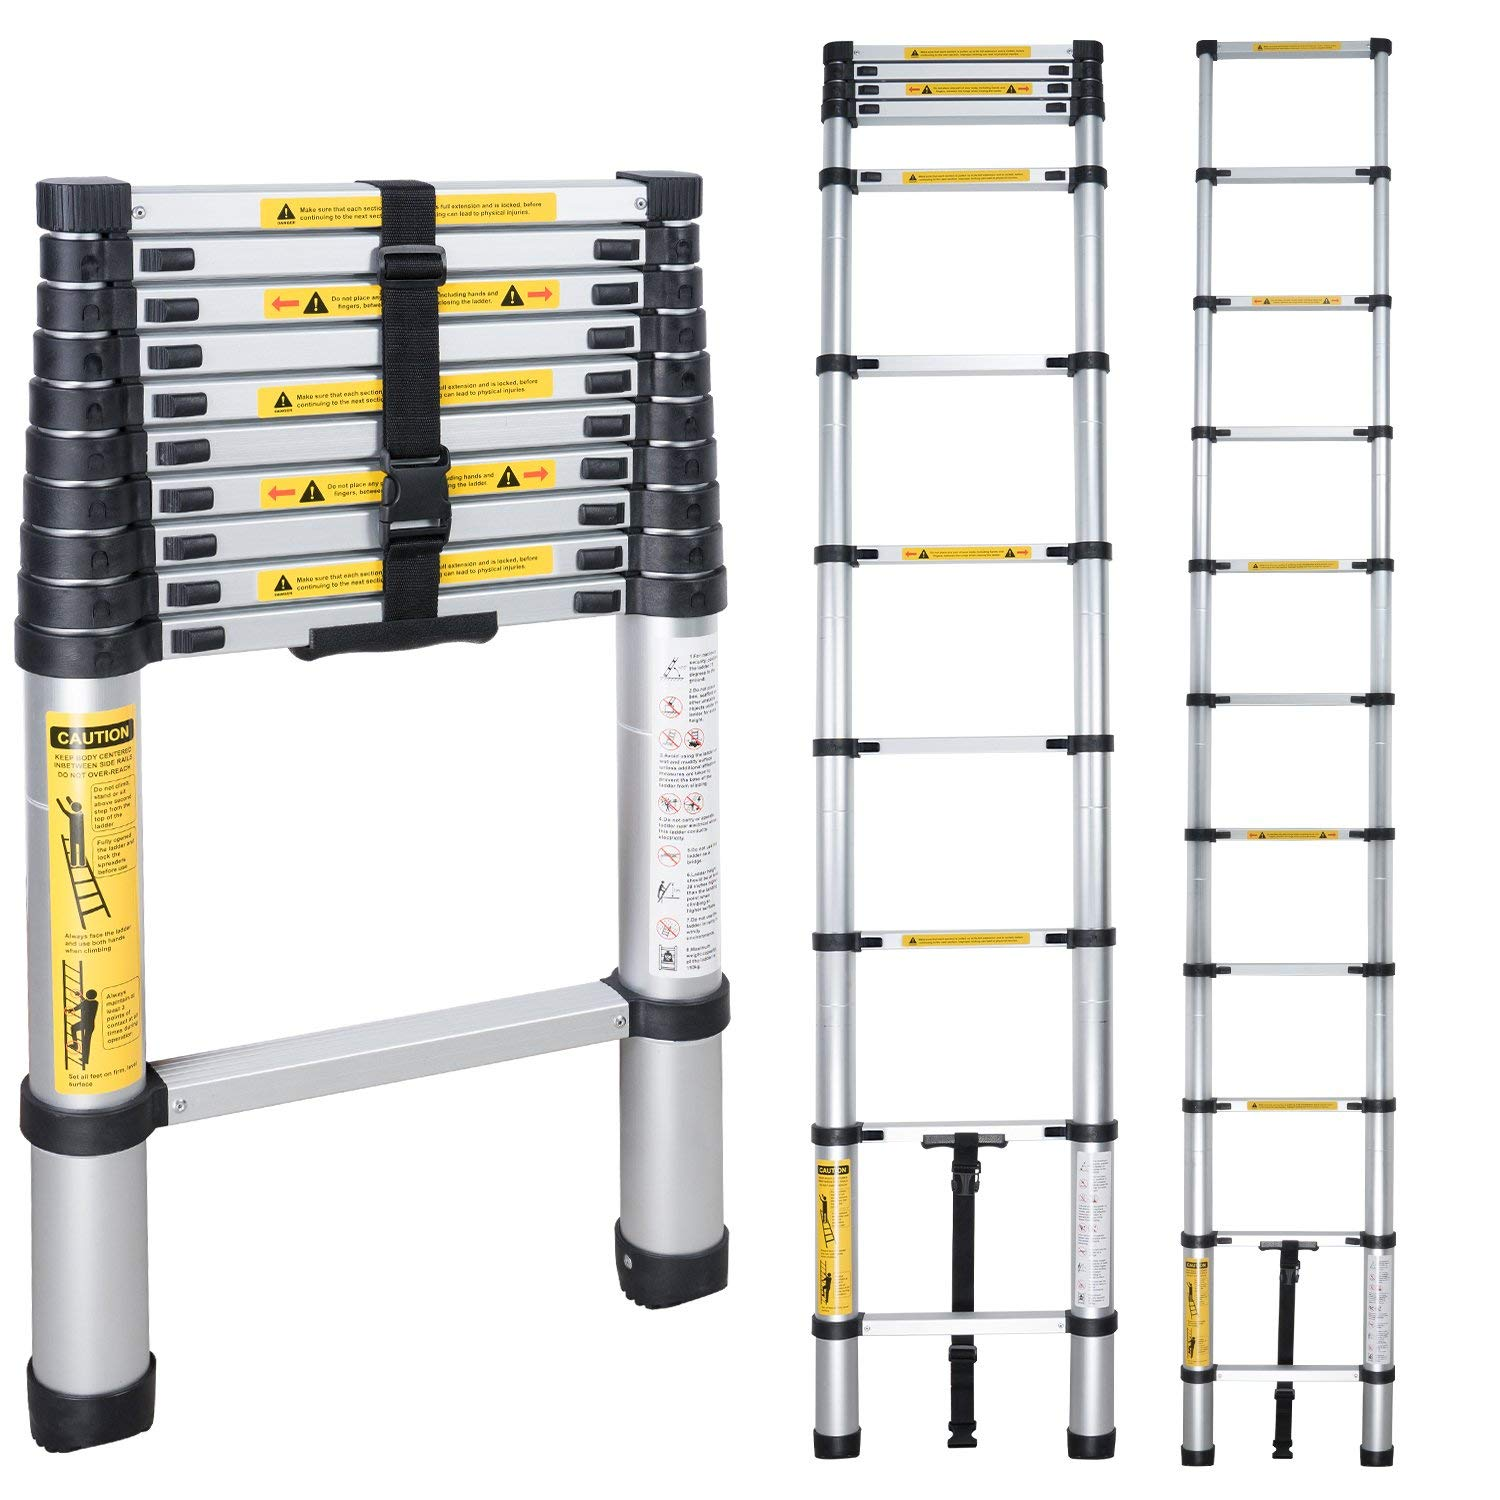 EN131 6.6ft (2m) Telescoping Ladder Folding Ladders Aluminum Multi Purpose Household Thickening Extension Ladder